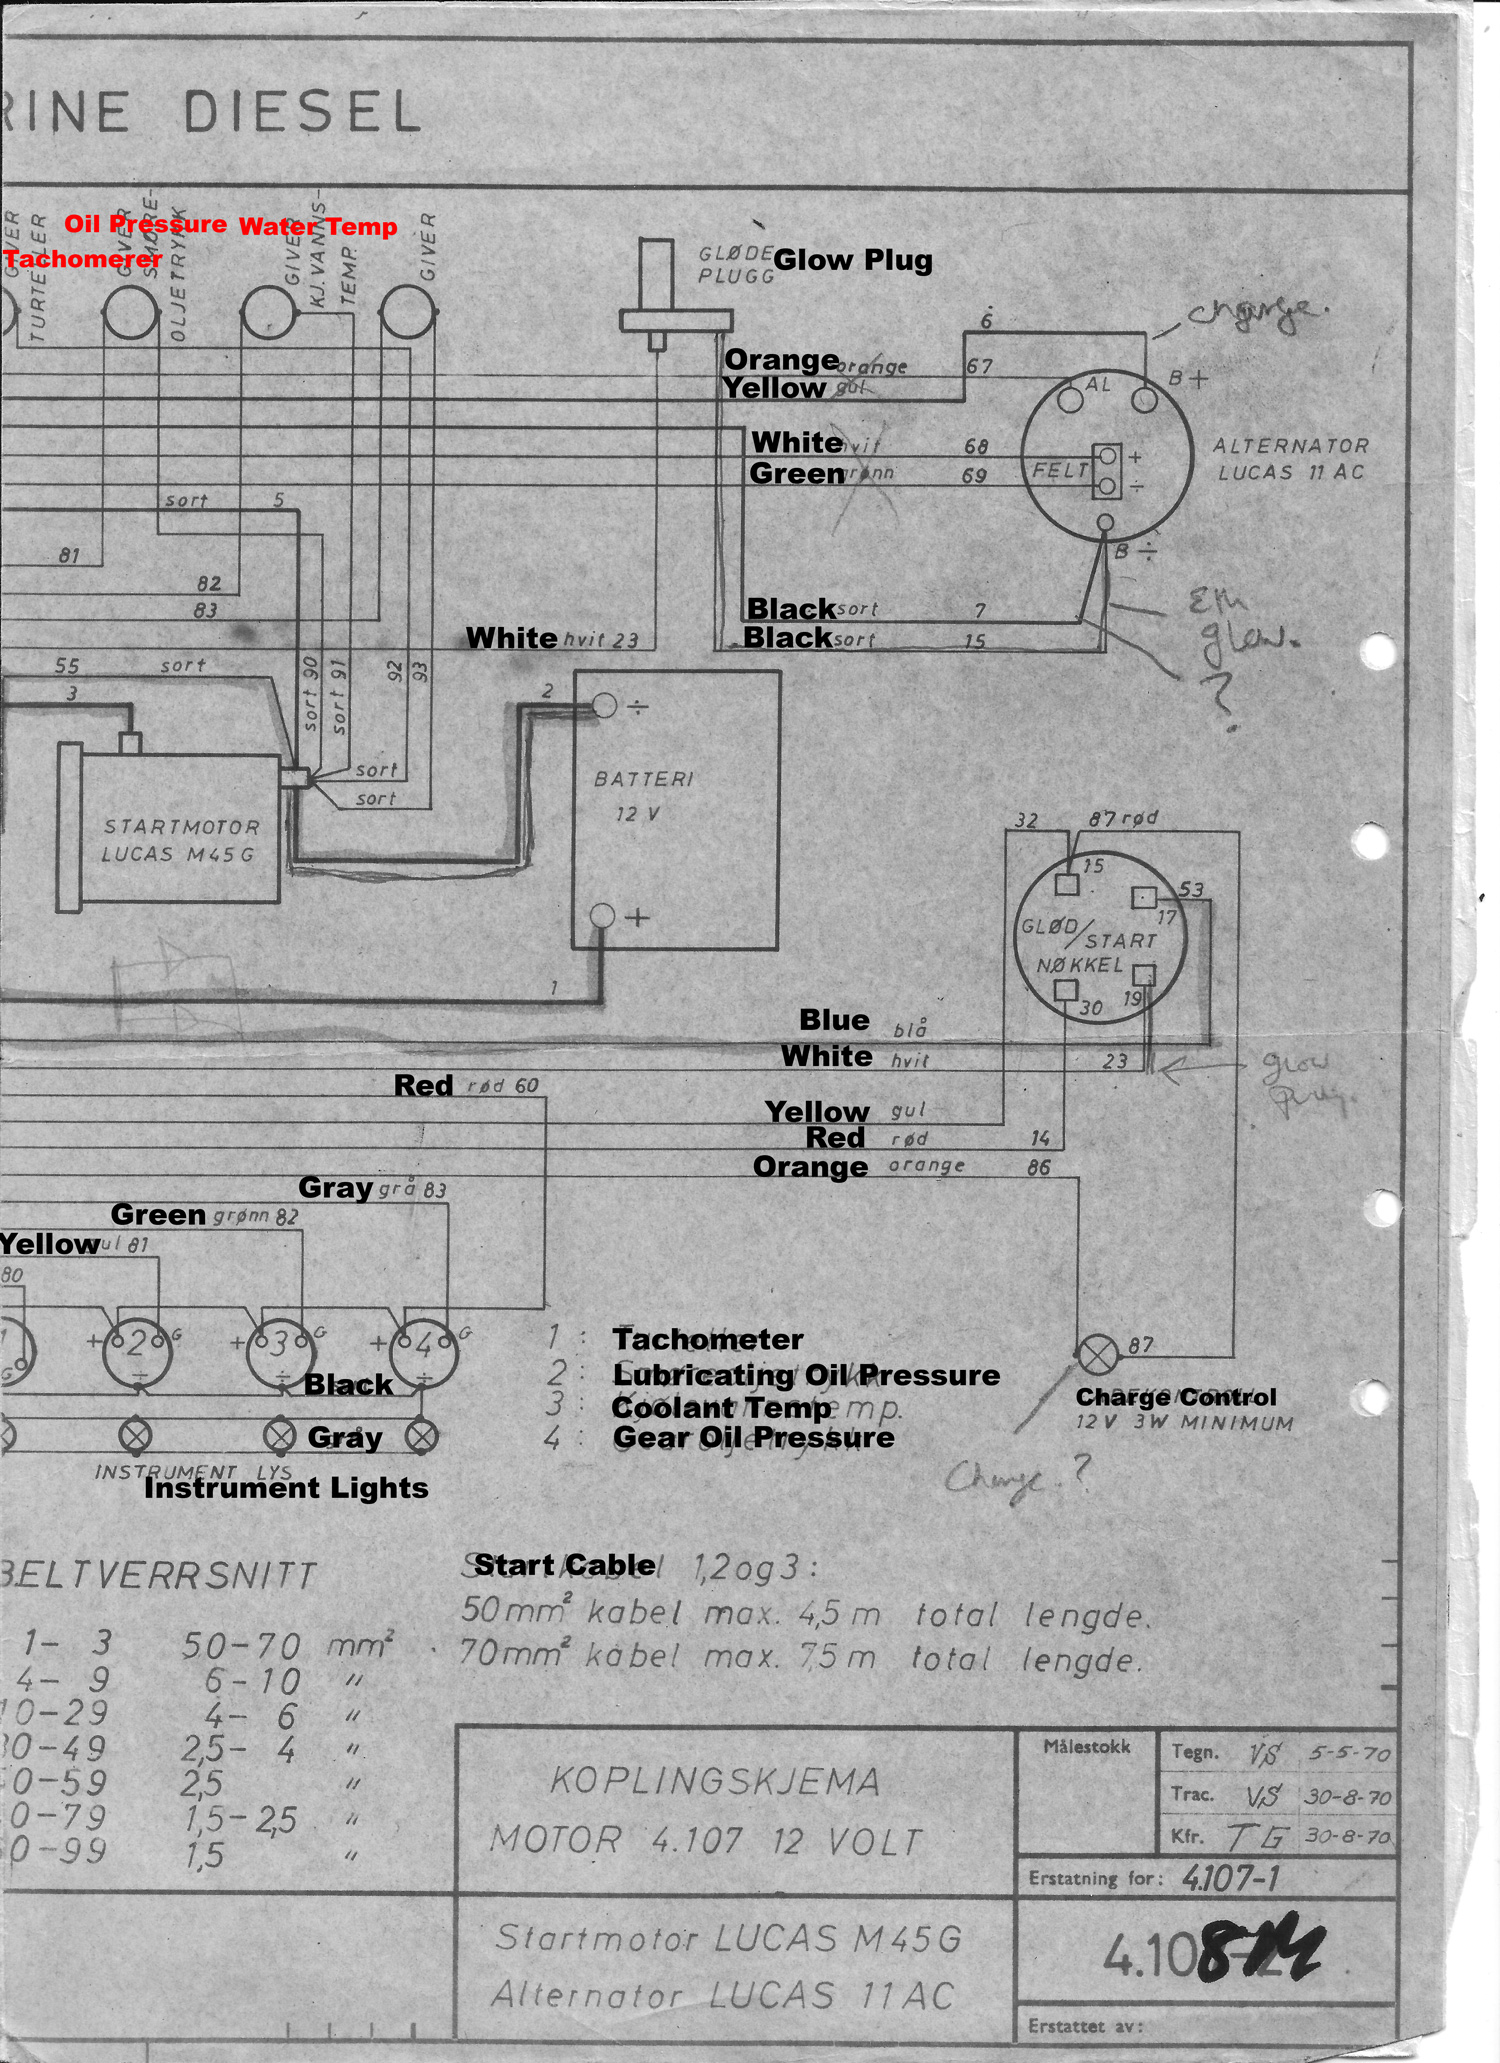 perkins 4108 wiring diagram alternator free download wiring diagram rh xwiaw us perkins marine alternator wiring diagram perkins 4108 wiring diagram alternator